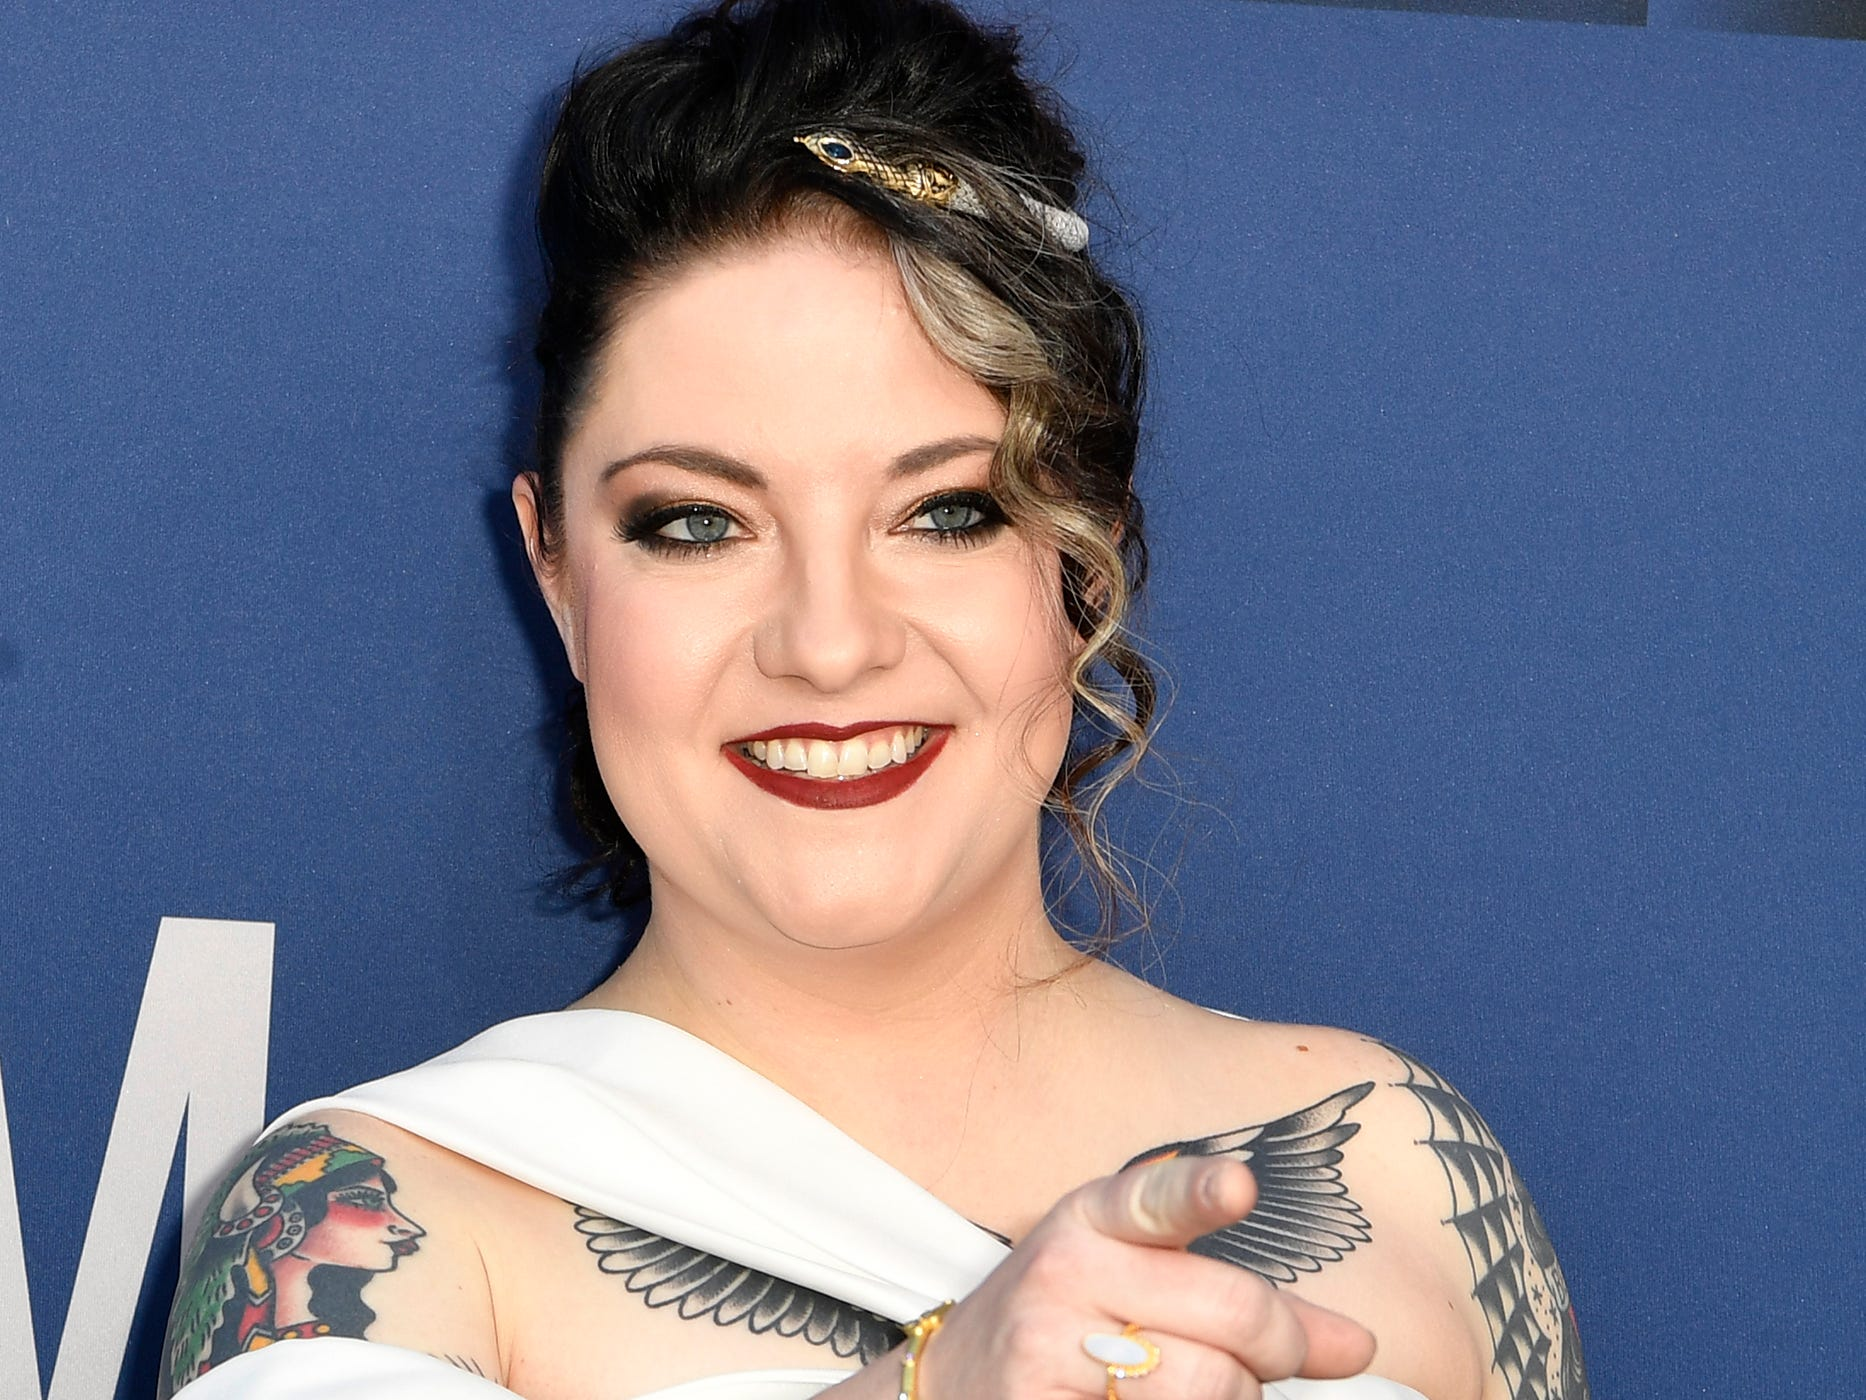 Ashley McBryde walks the red carpet at the 54TH Academy of Country Music Awards Sunday, April 7, 2019, in Las Vegas, Nev.